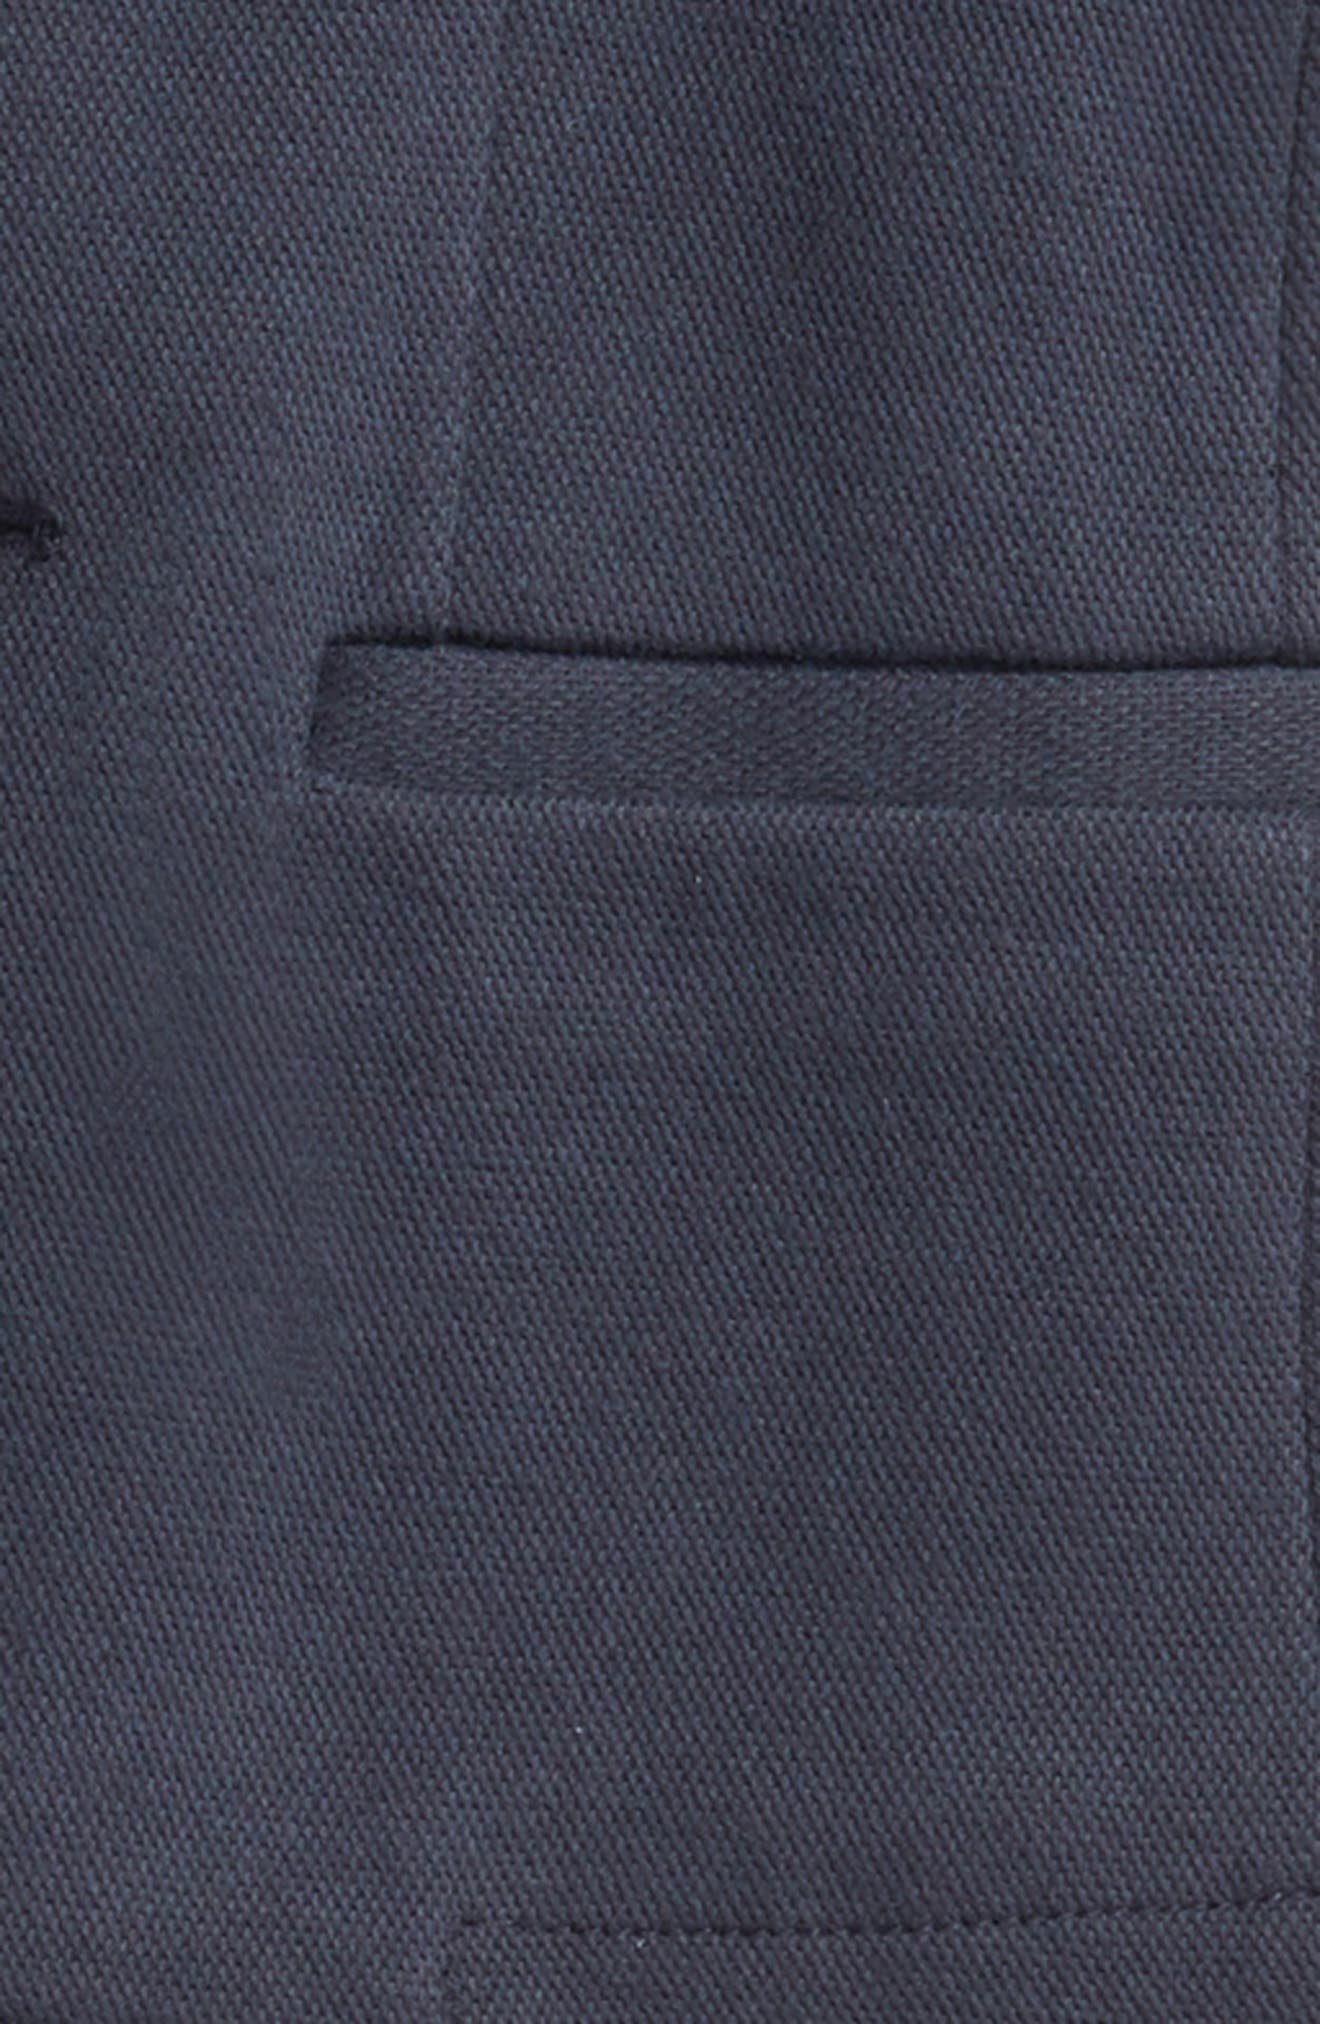 Piqué Blazer,                             Alternate thumbnail 2, color,                             Navy